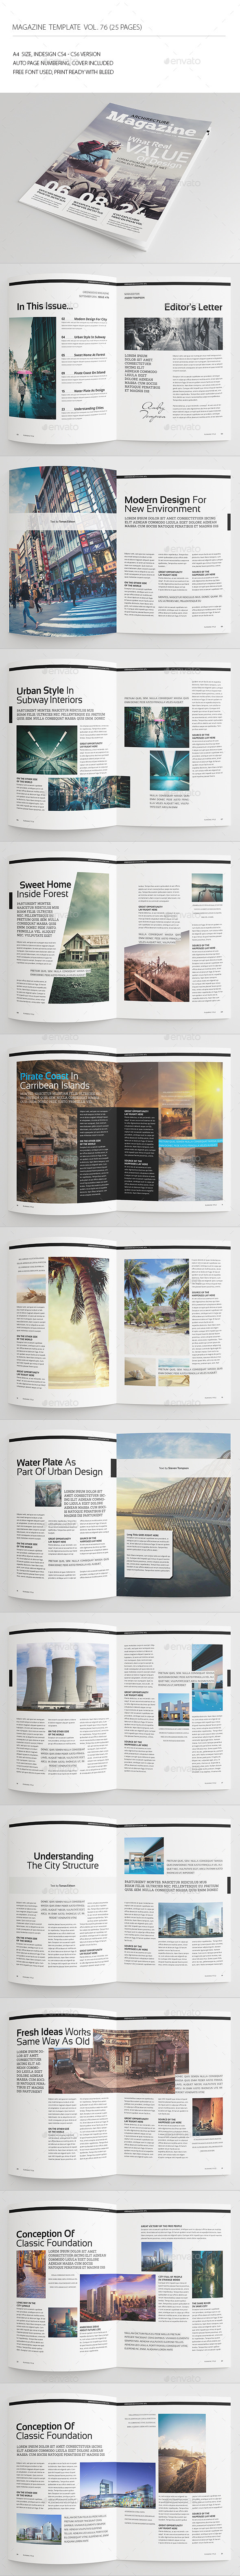 GraphicRiver 25 Pages Architect Magazine Vol76 8906851